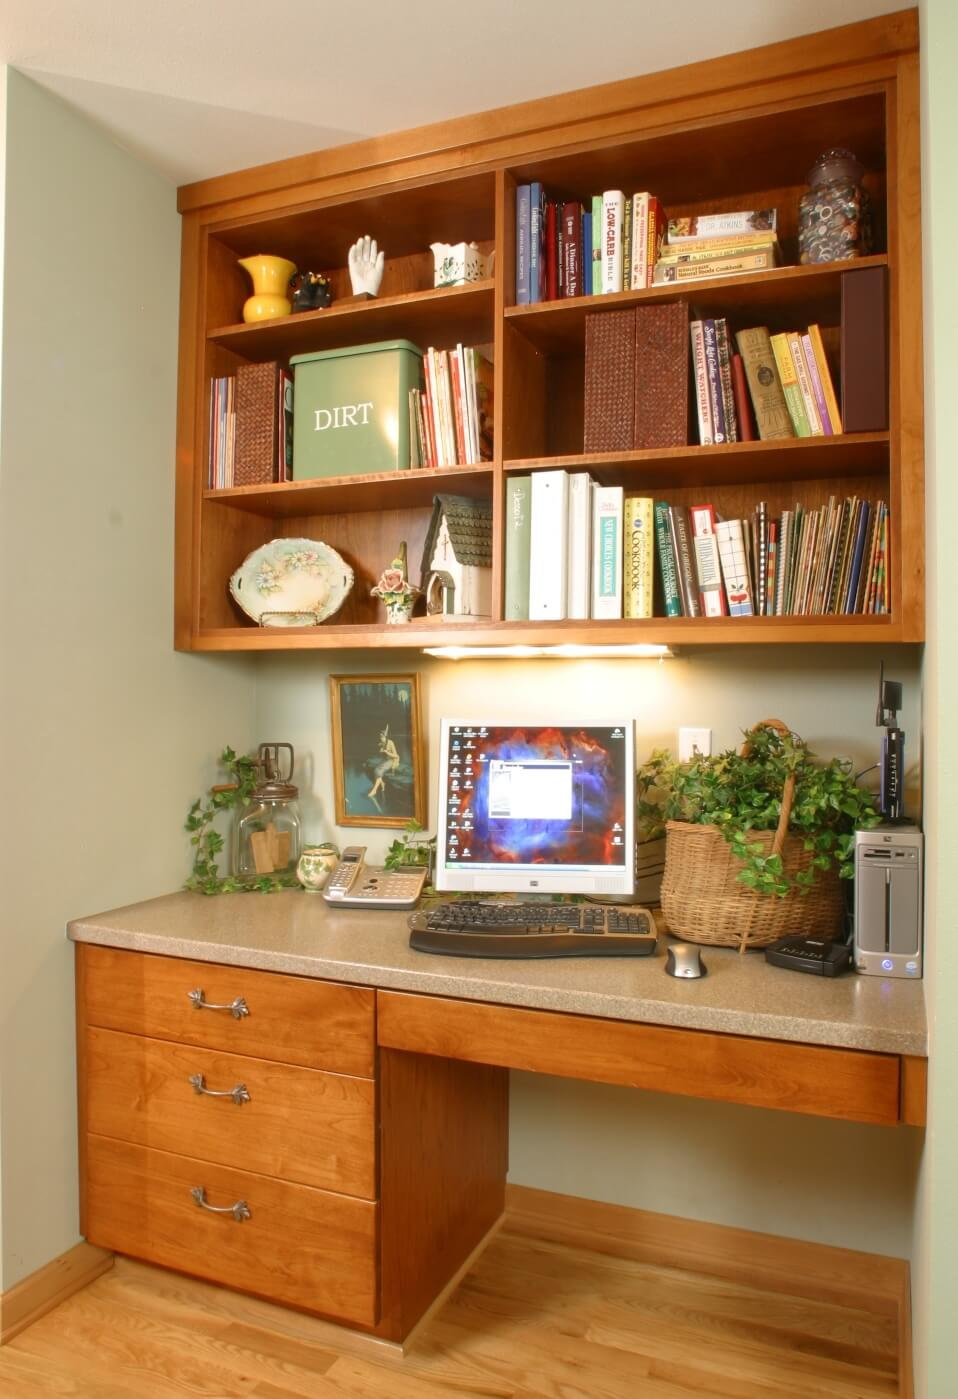 This handy kitchen desk serves as a modern home communication center.